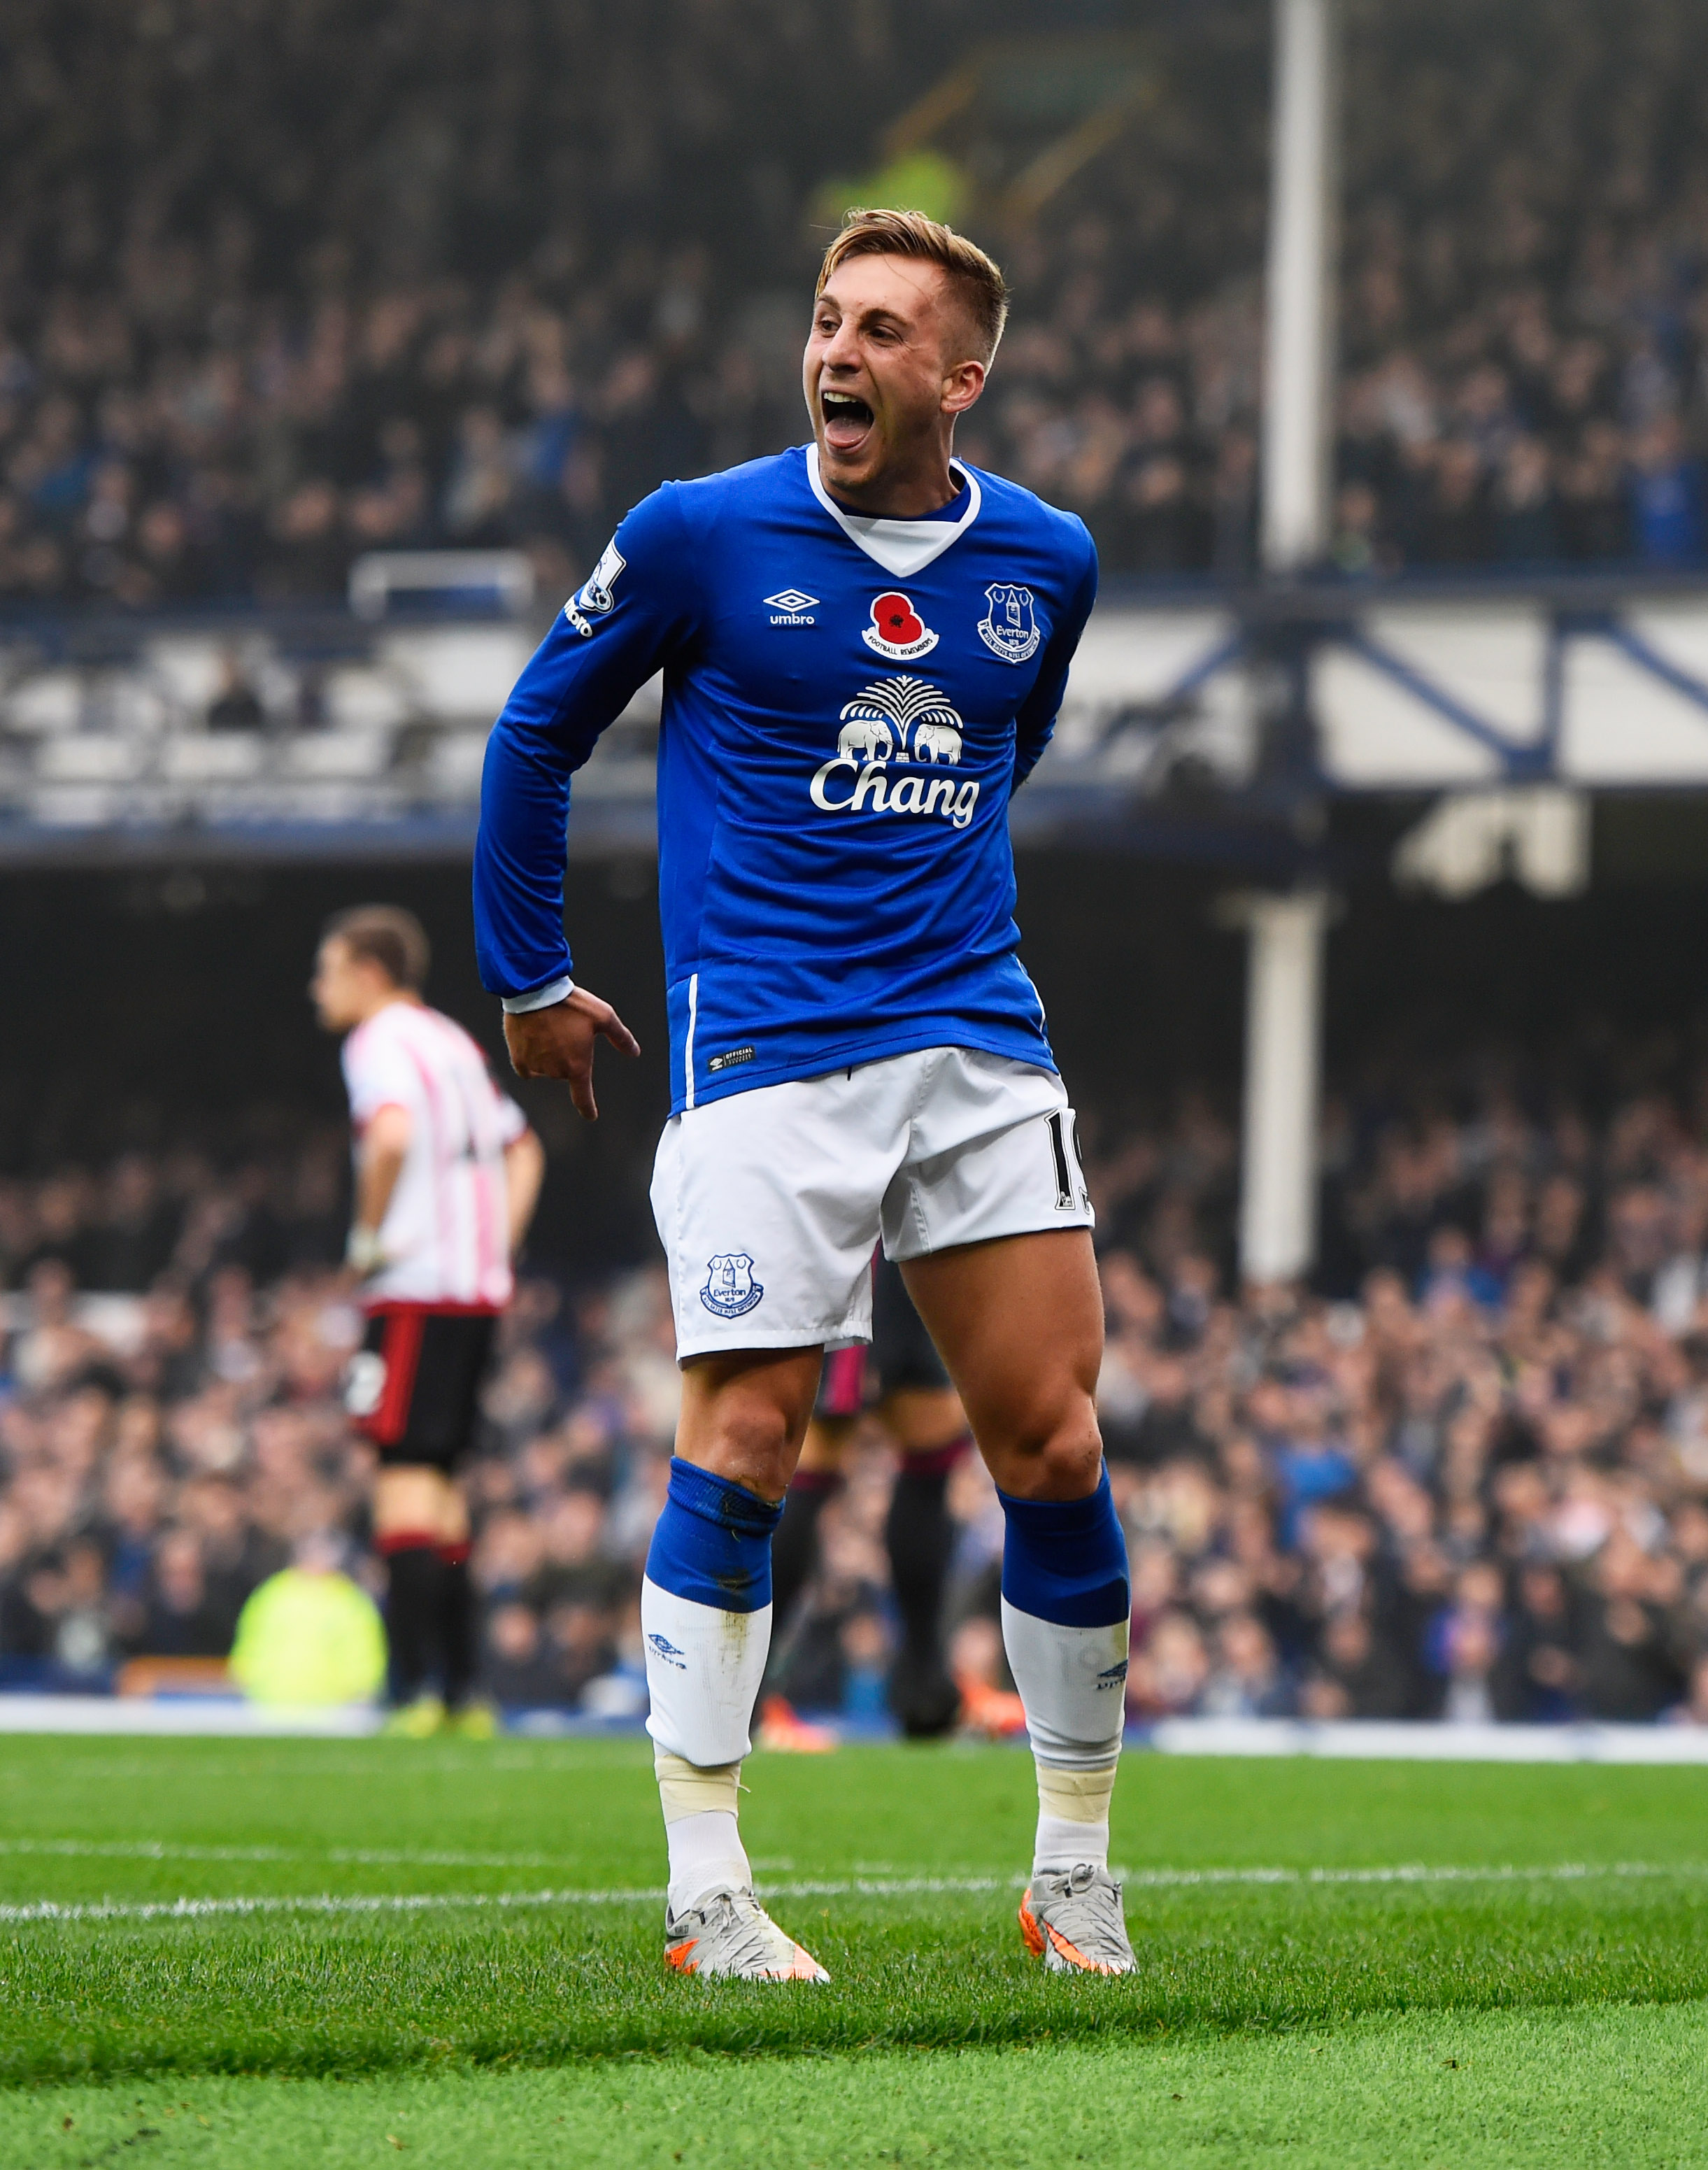 Will Deulofeu and the Toffees be celebrating again this weekend?